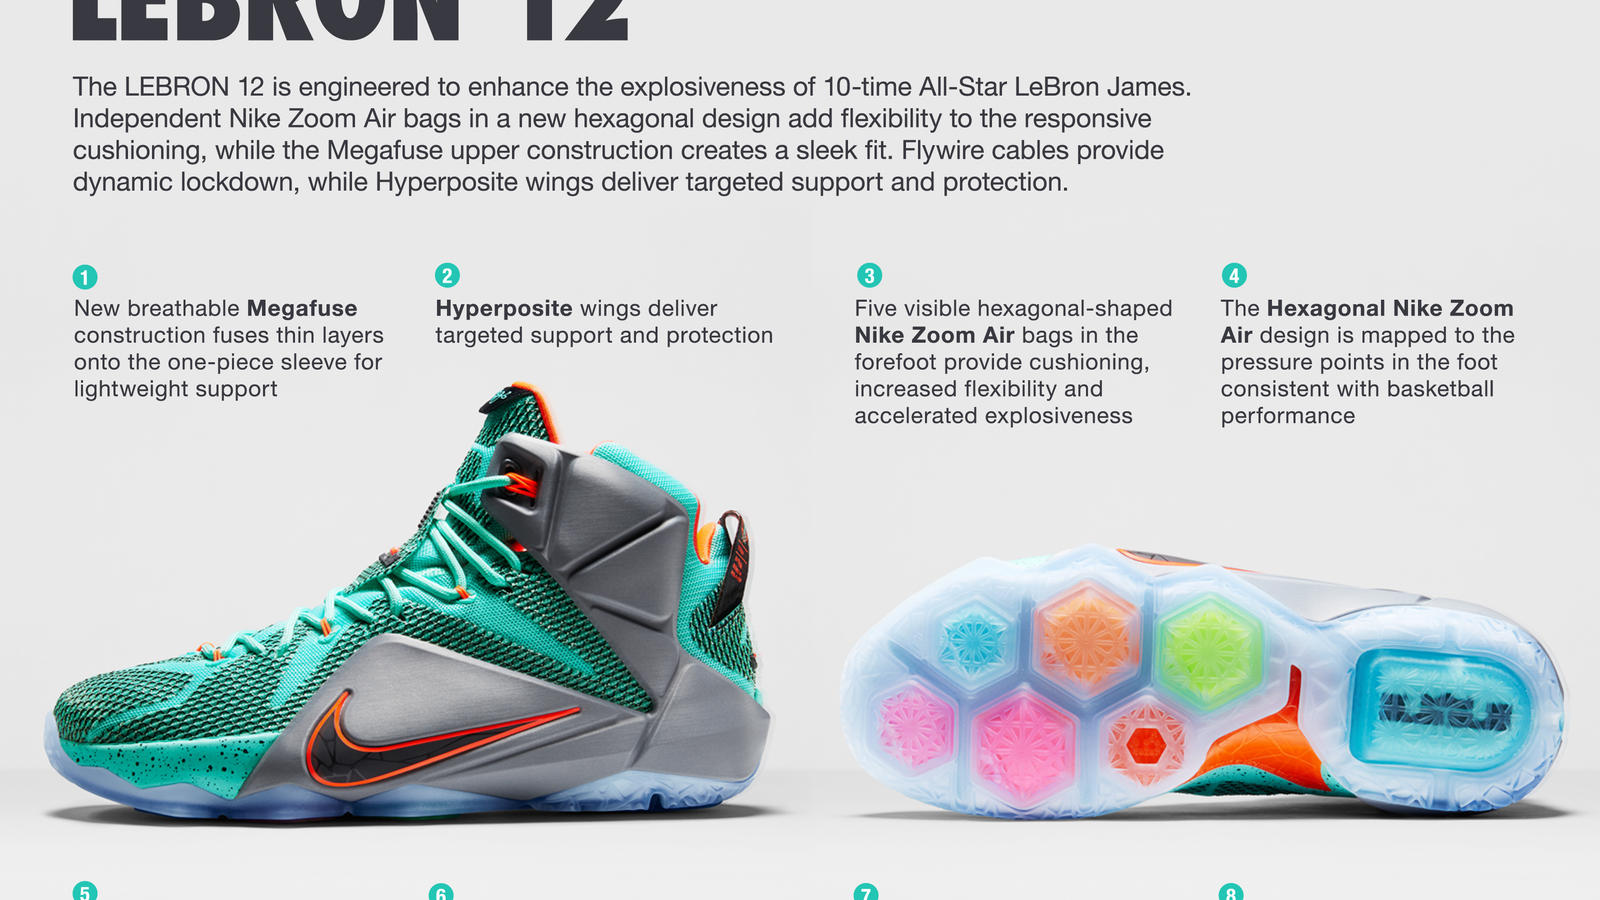 new product 0d9a6 fefbf Nike LEBRON 12: Engineered for Explosiveness - Nike News